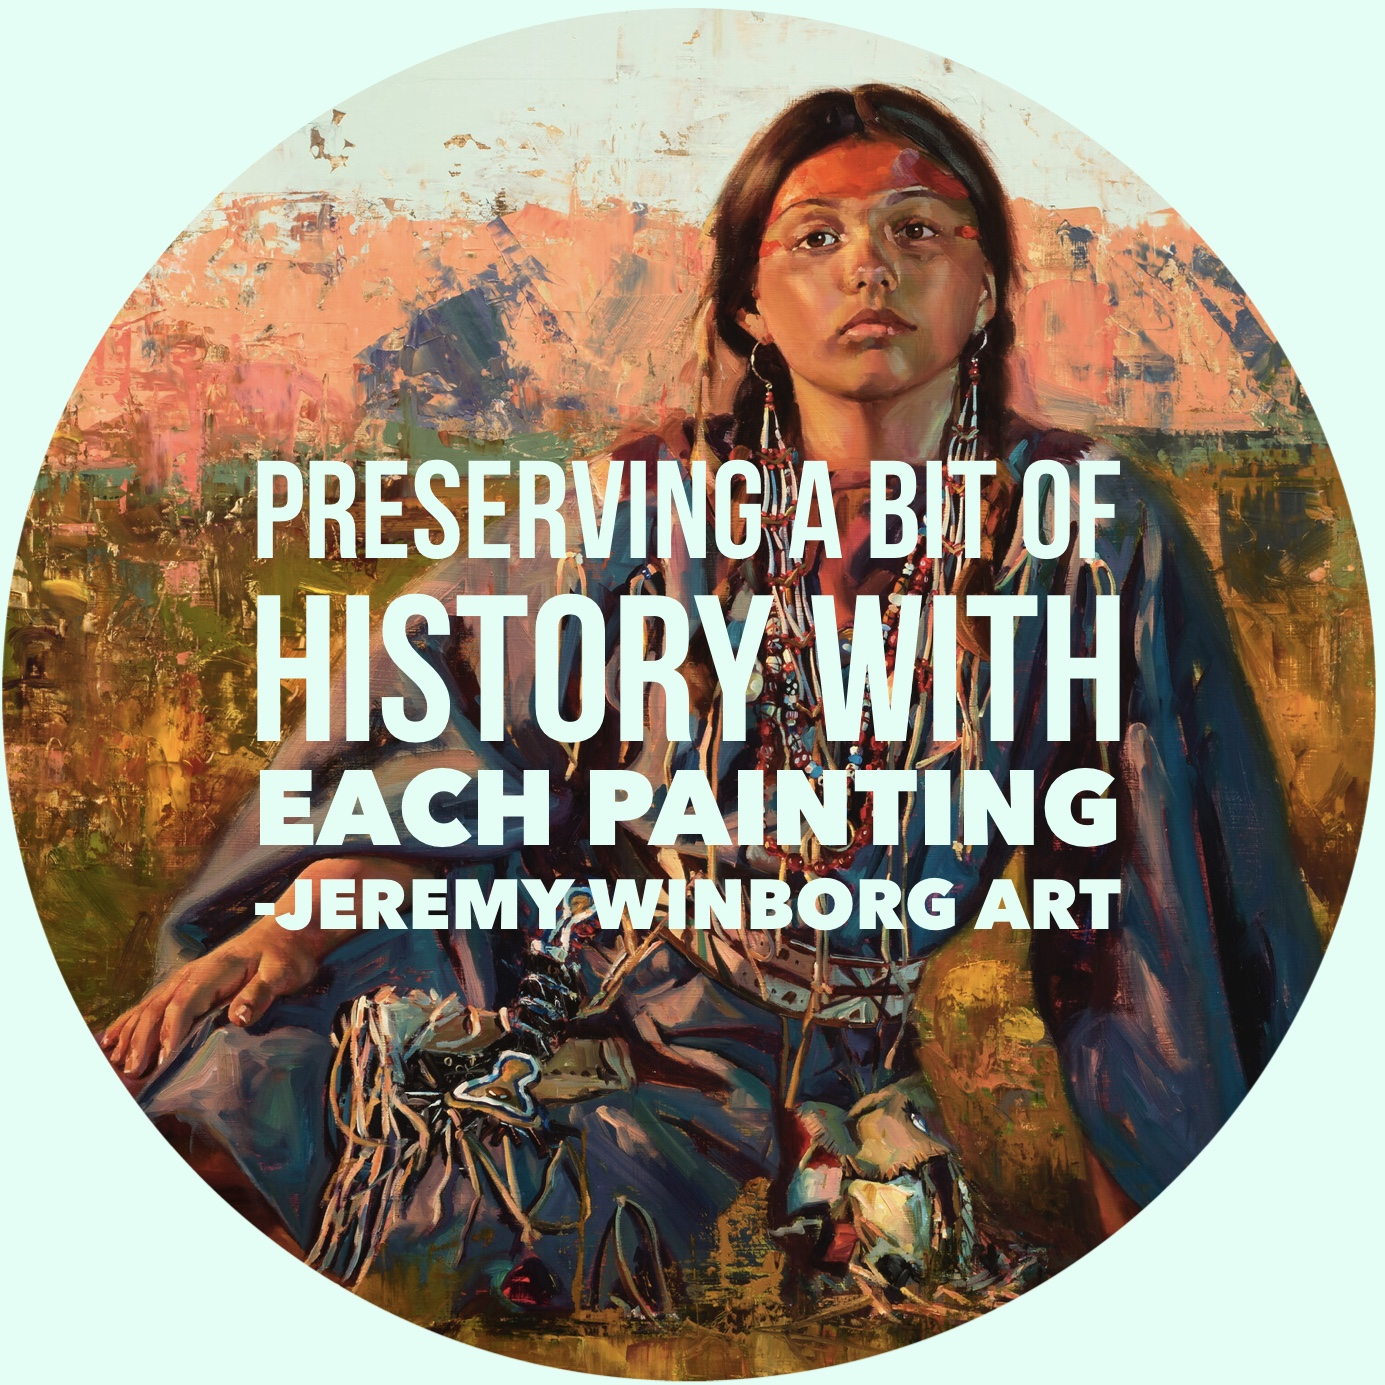 Shop Now, Jeremy Winborg Art